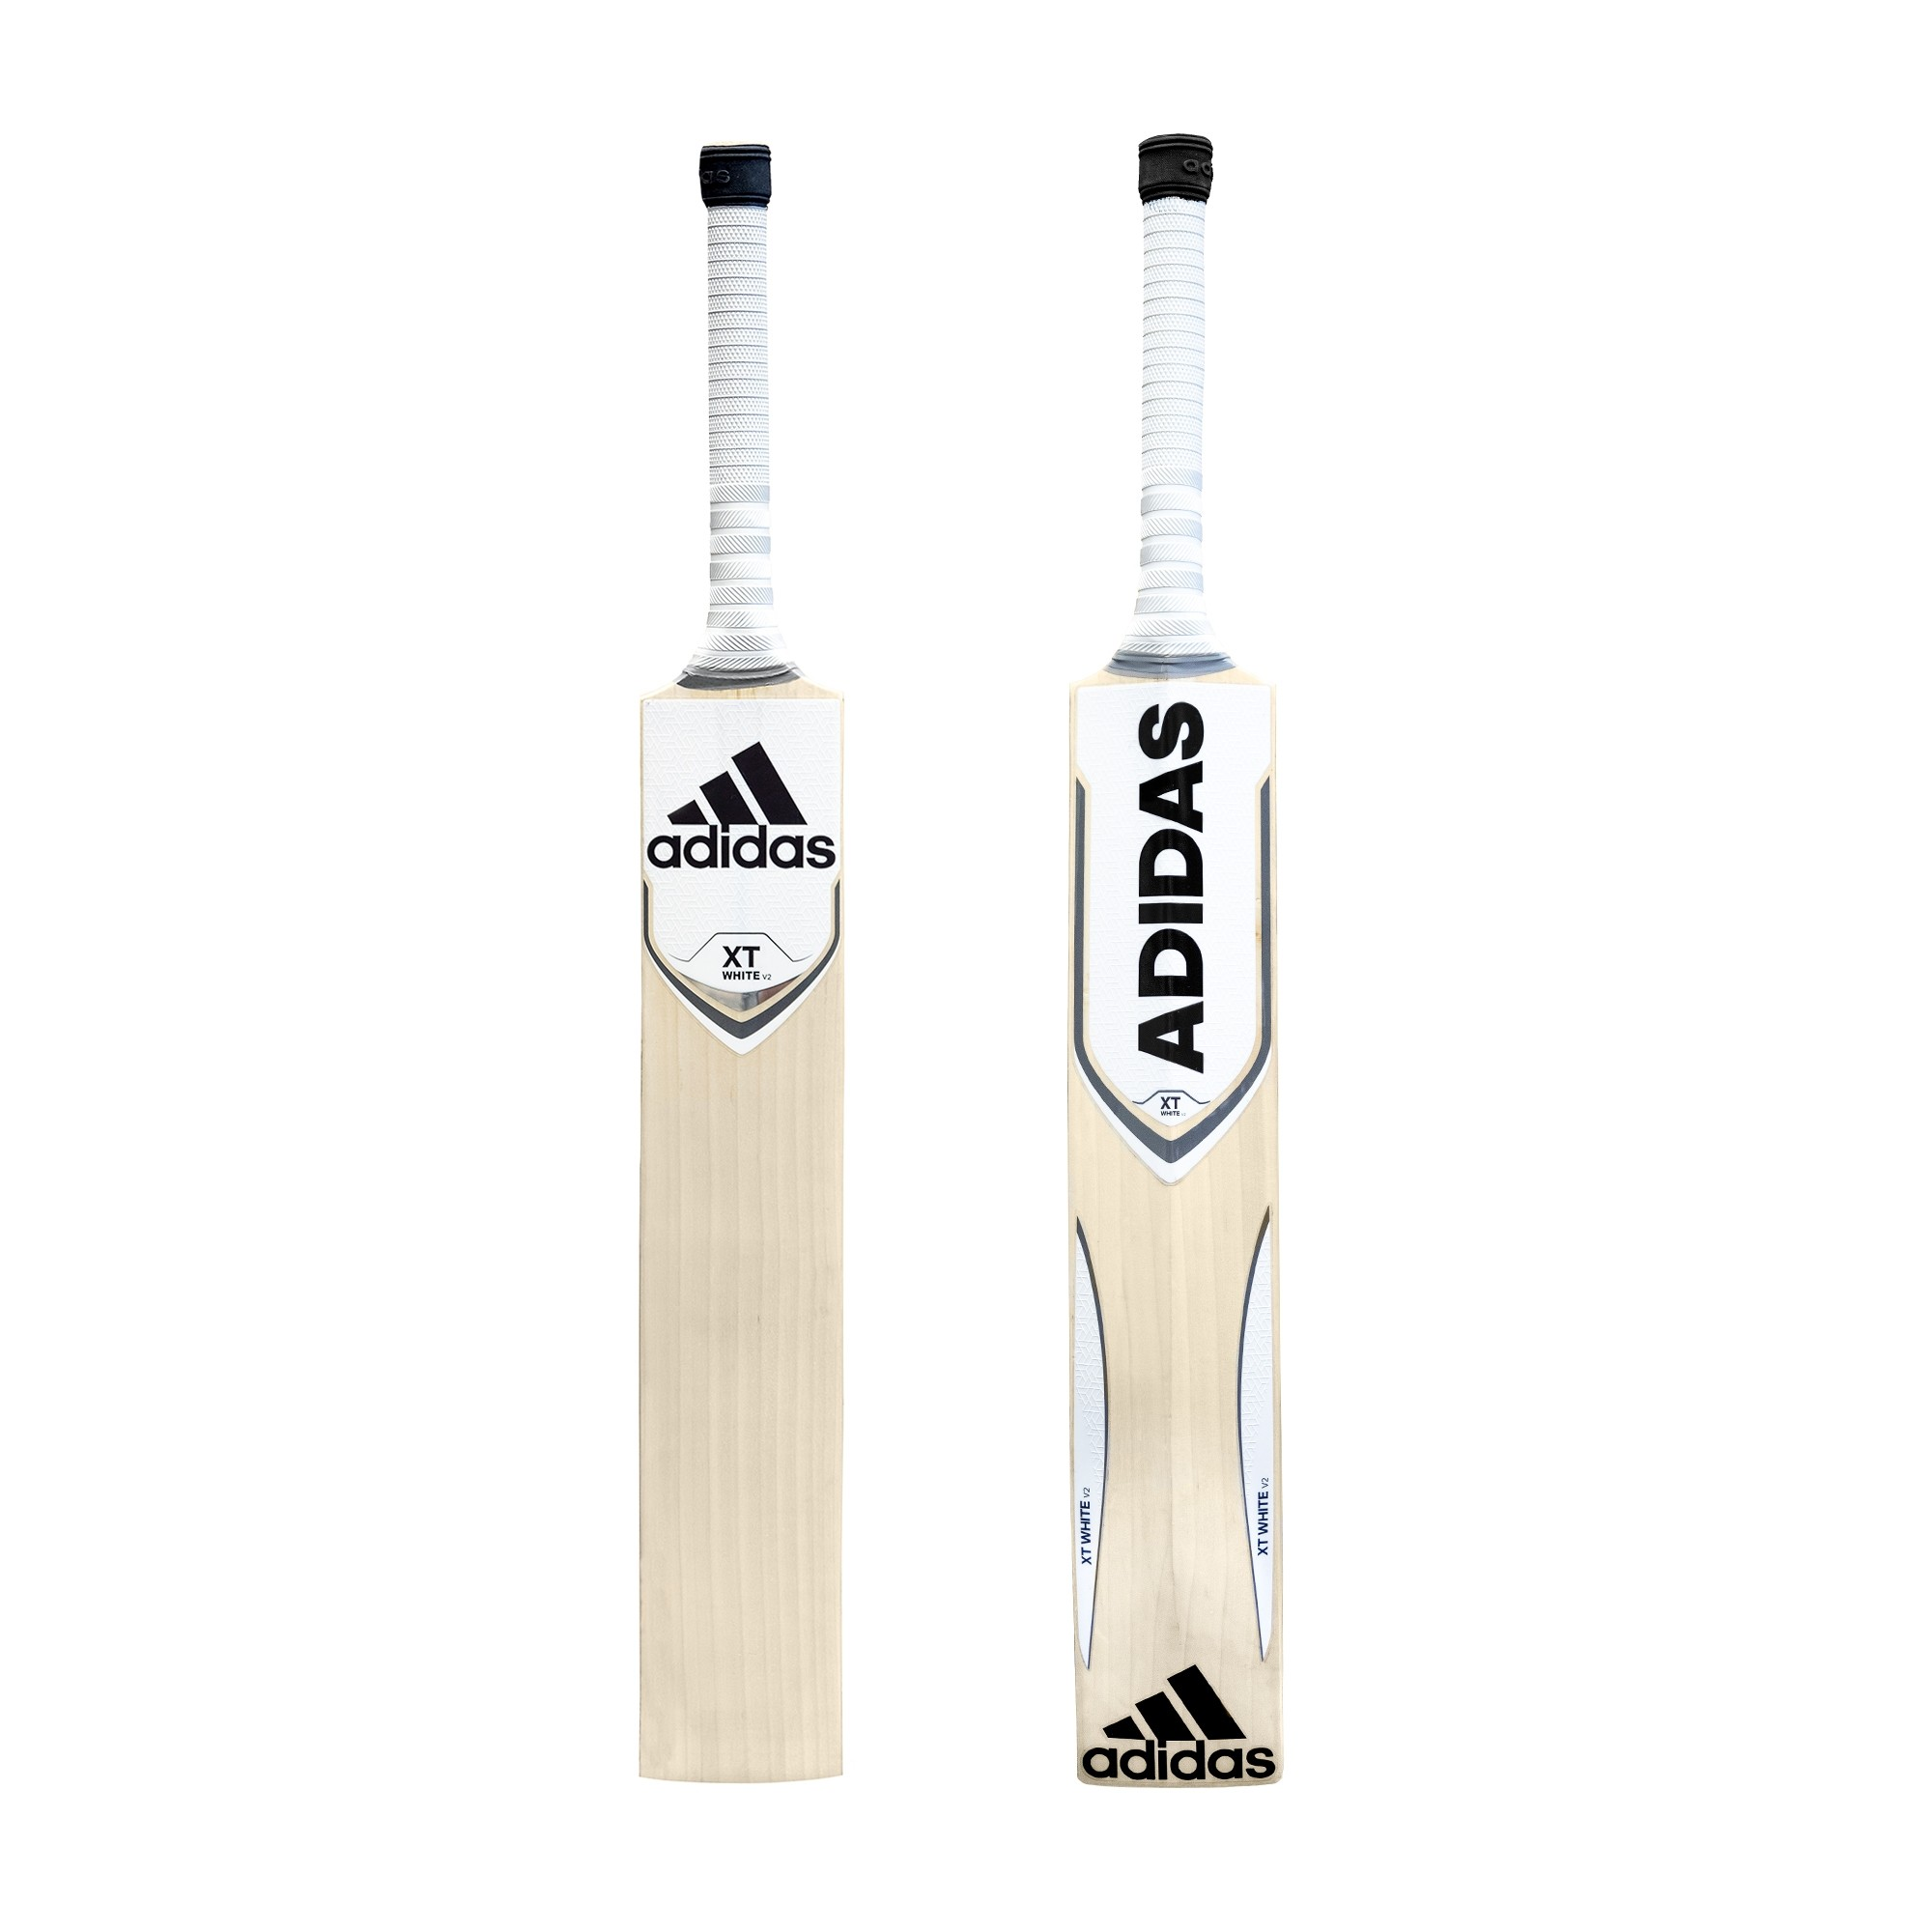 2019 Adidas Xt White 3 0 Cricket Bat